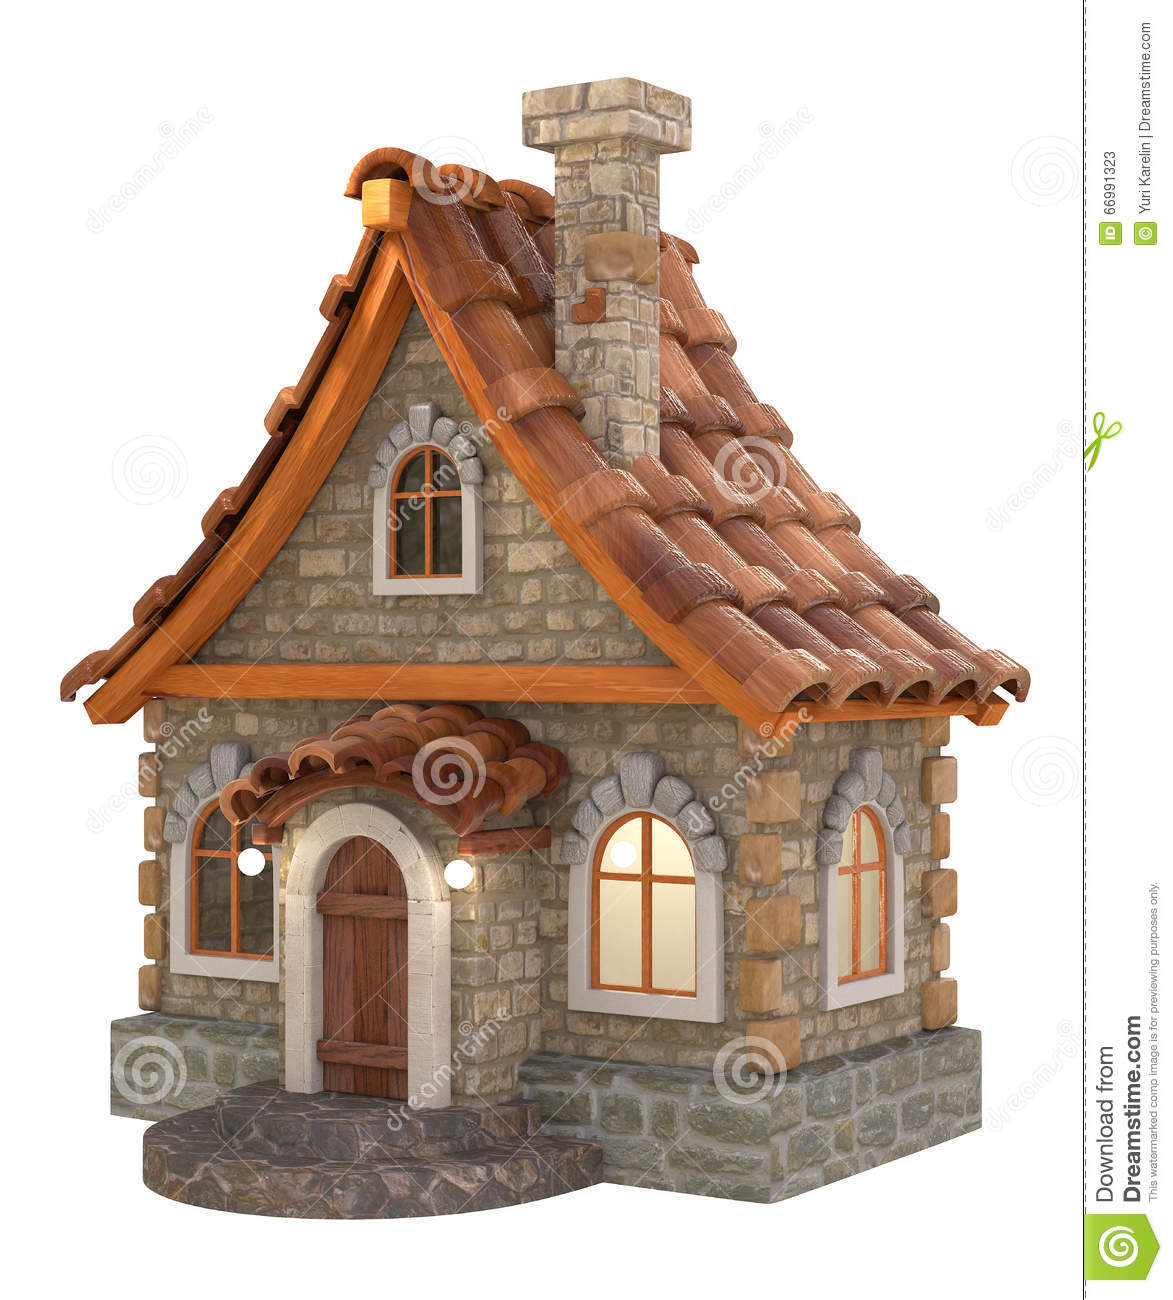 Tecknad film f r hus 3d stock illustrationer bild 66991323 for Costi di costruzione casa di mattoni